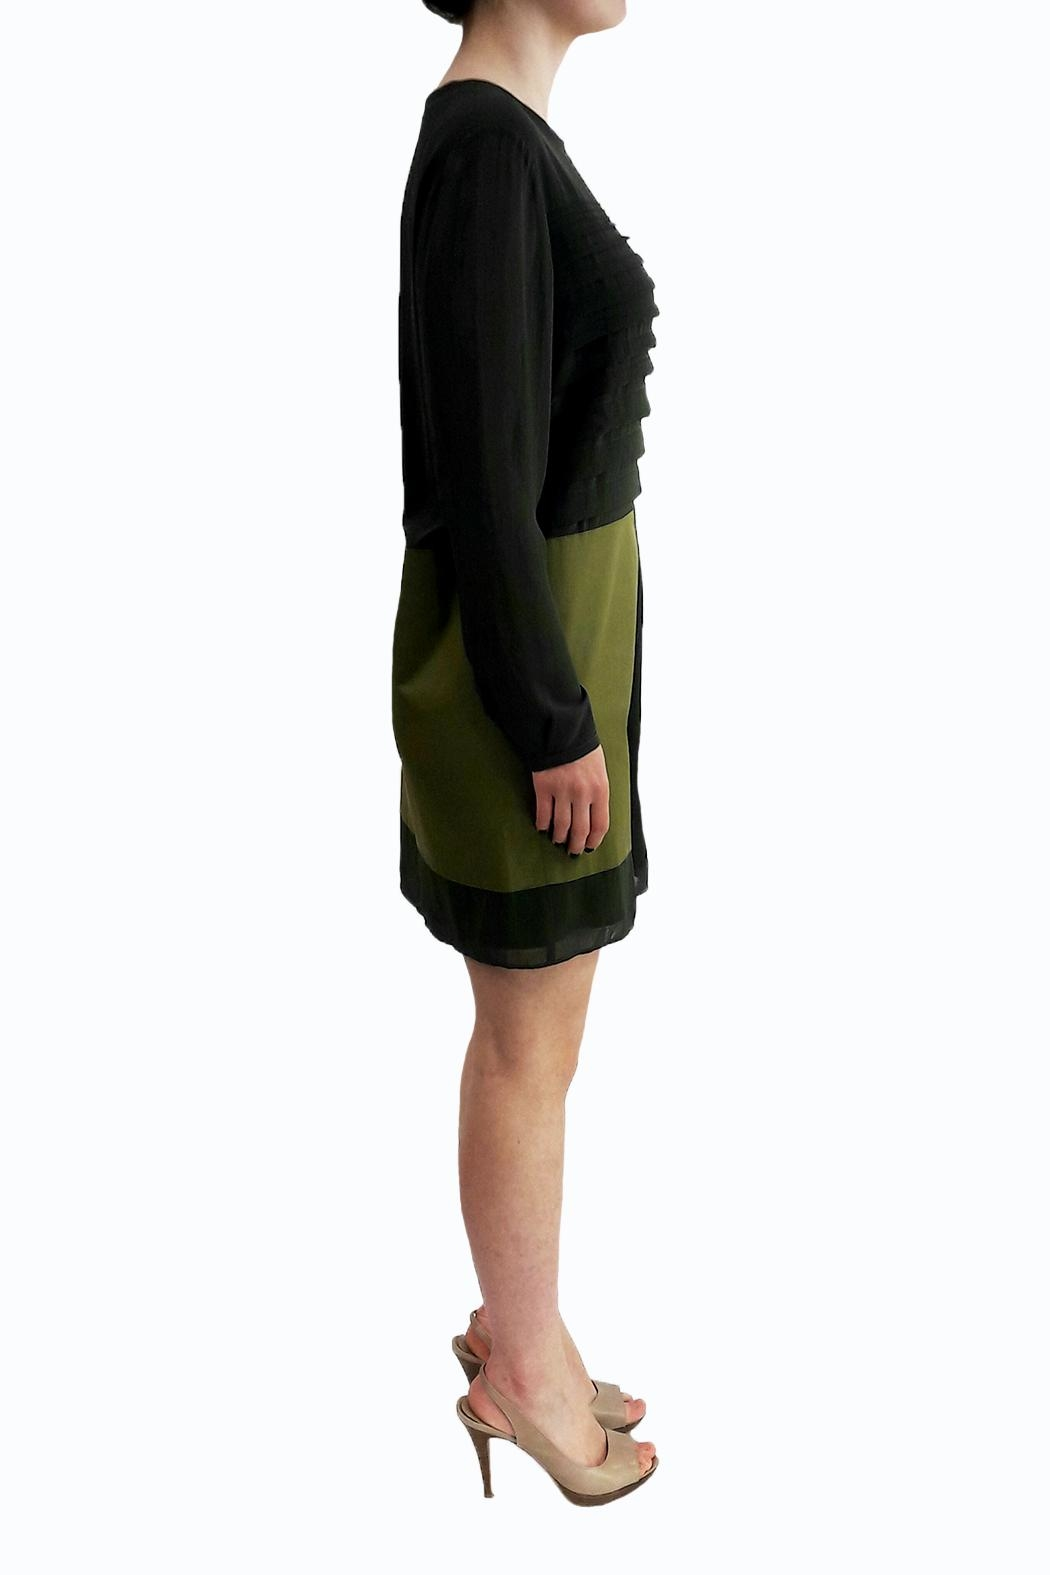 Sonia by Sonia Rykiel Khaki Dress - Front Full Image